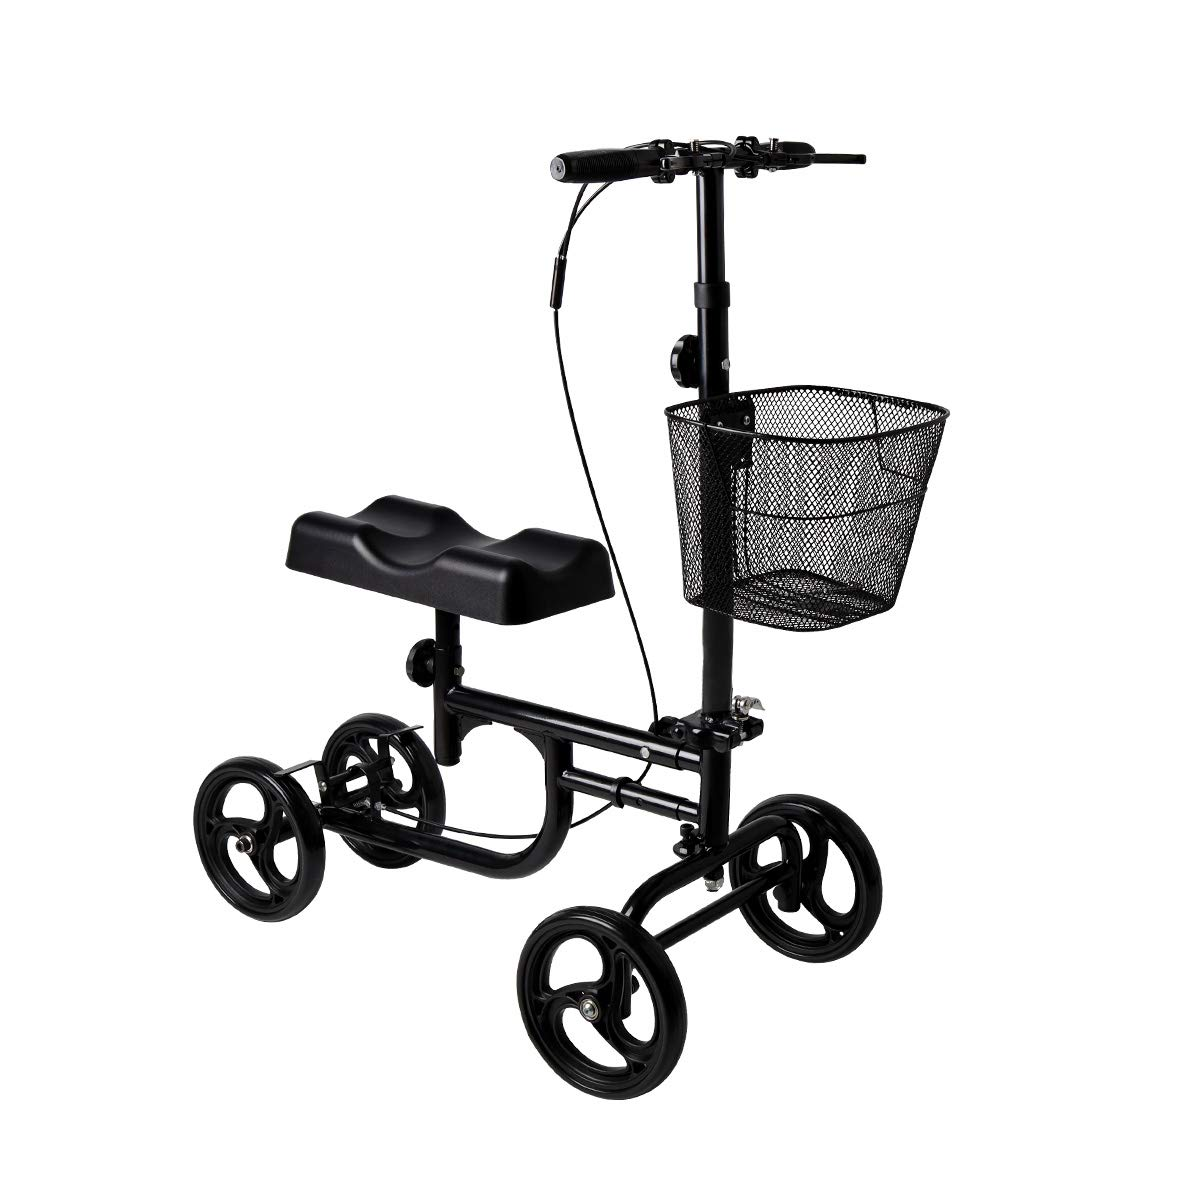 Give Me Knee Scooter Steerable Knee Walker Deluxe Crutch Alternative Dual Braking System in Black by Give Me